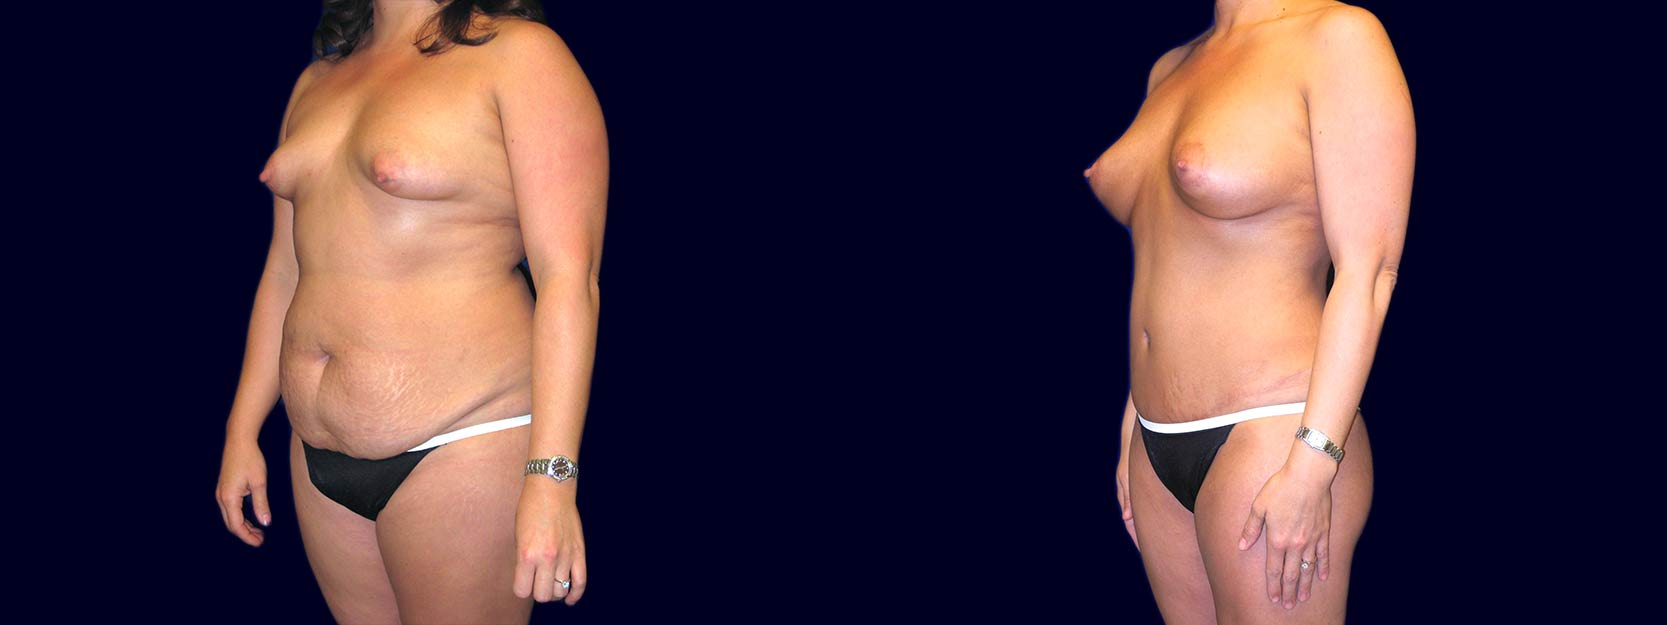 Left 3/4 View - Breast Augmentation with Periareolar Lift & Tummy Tuck